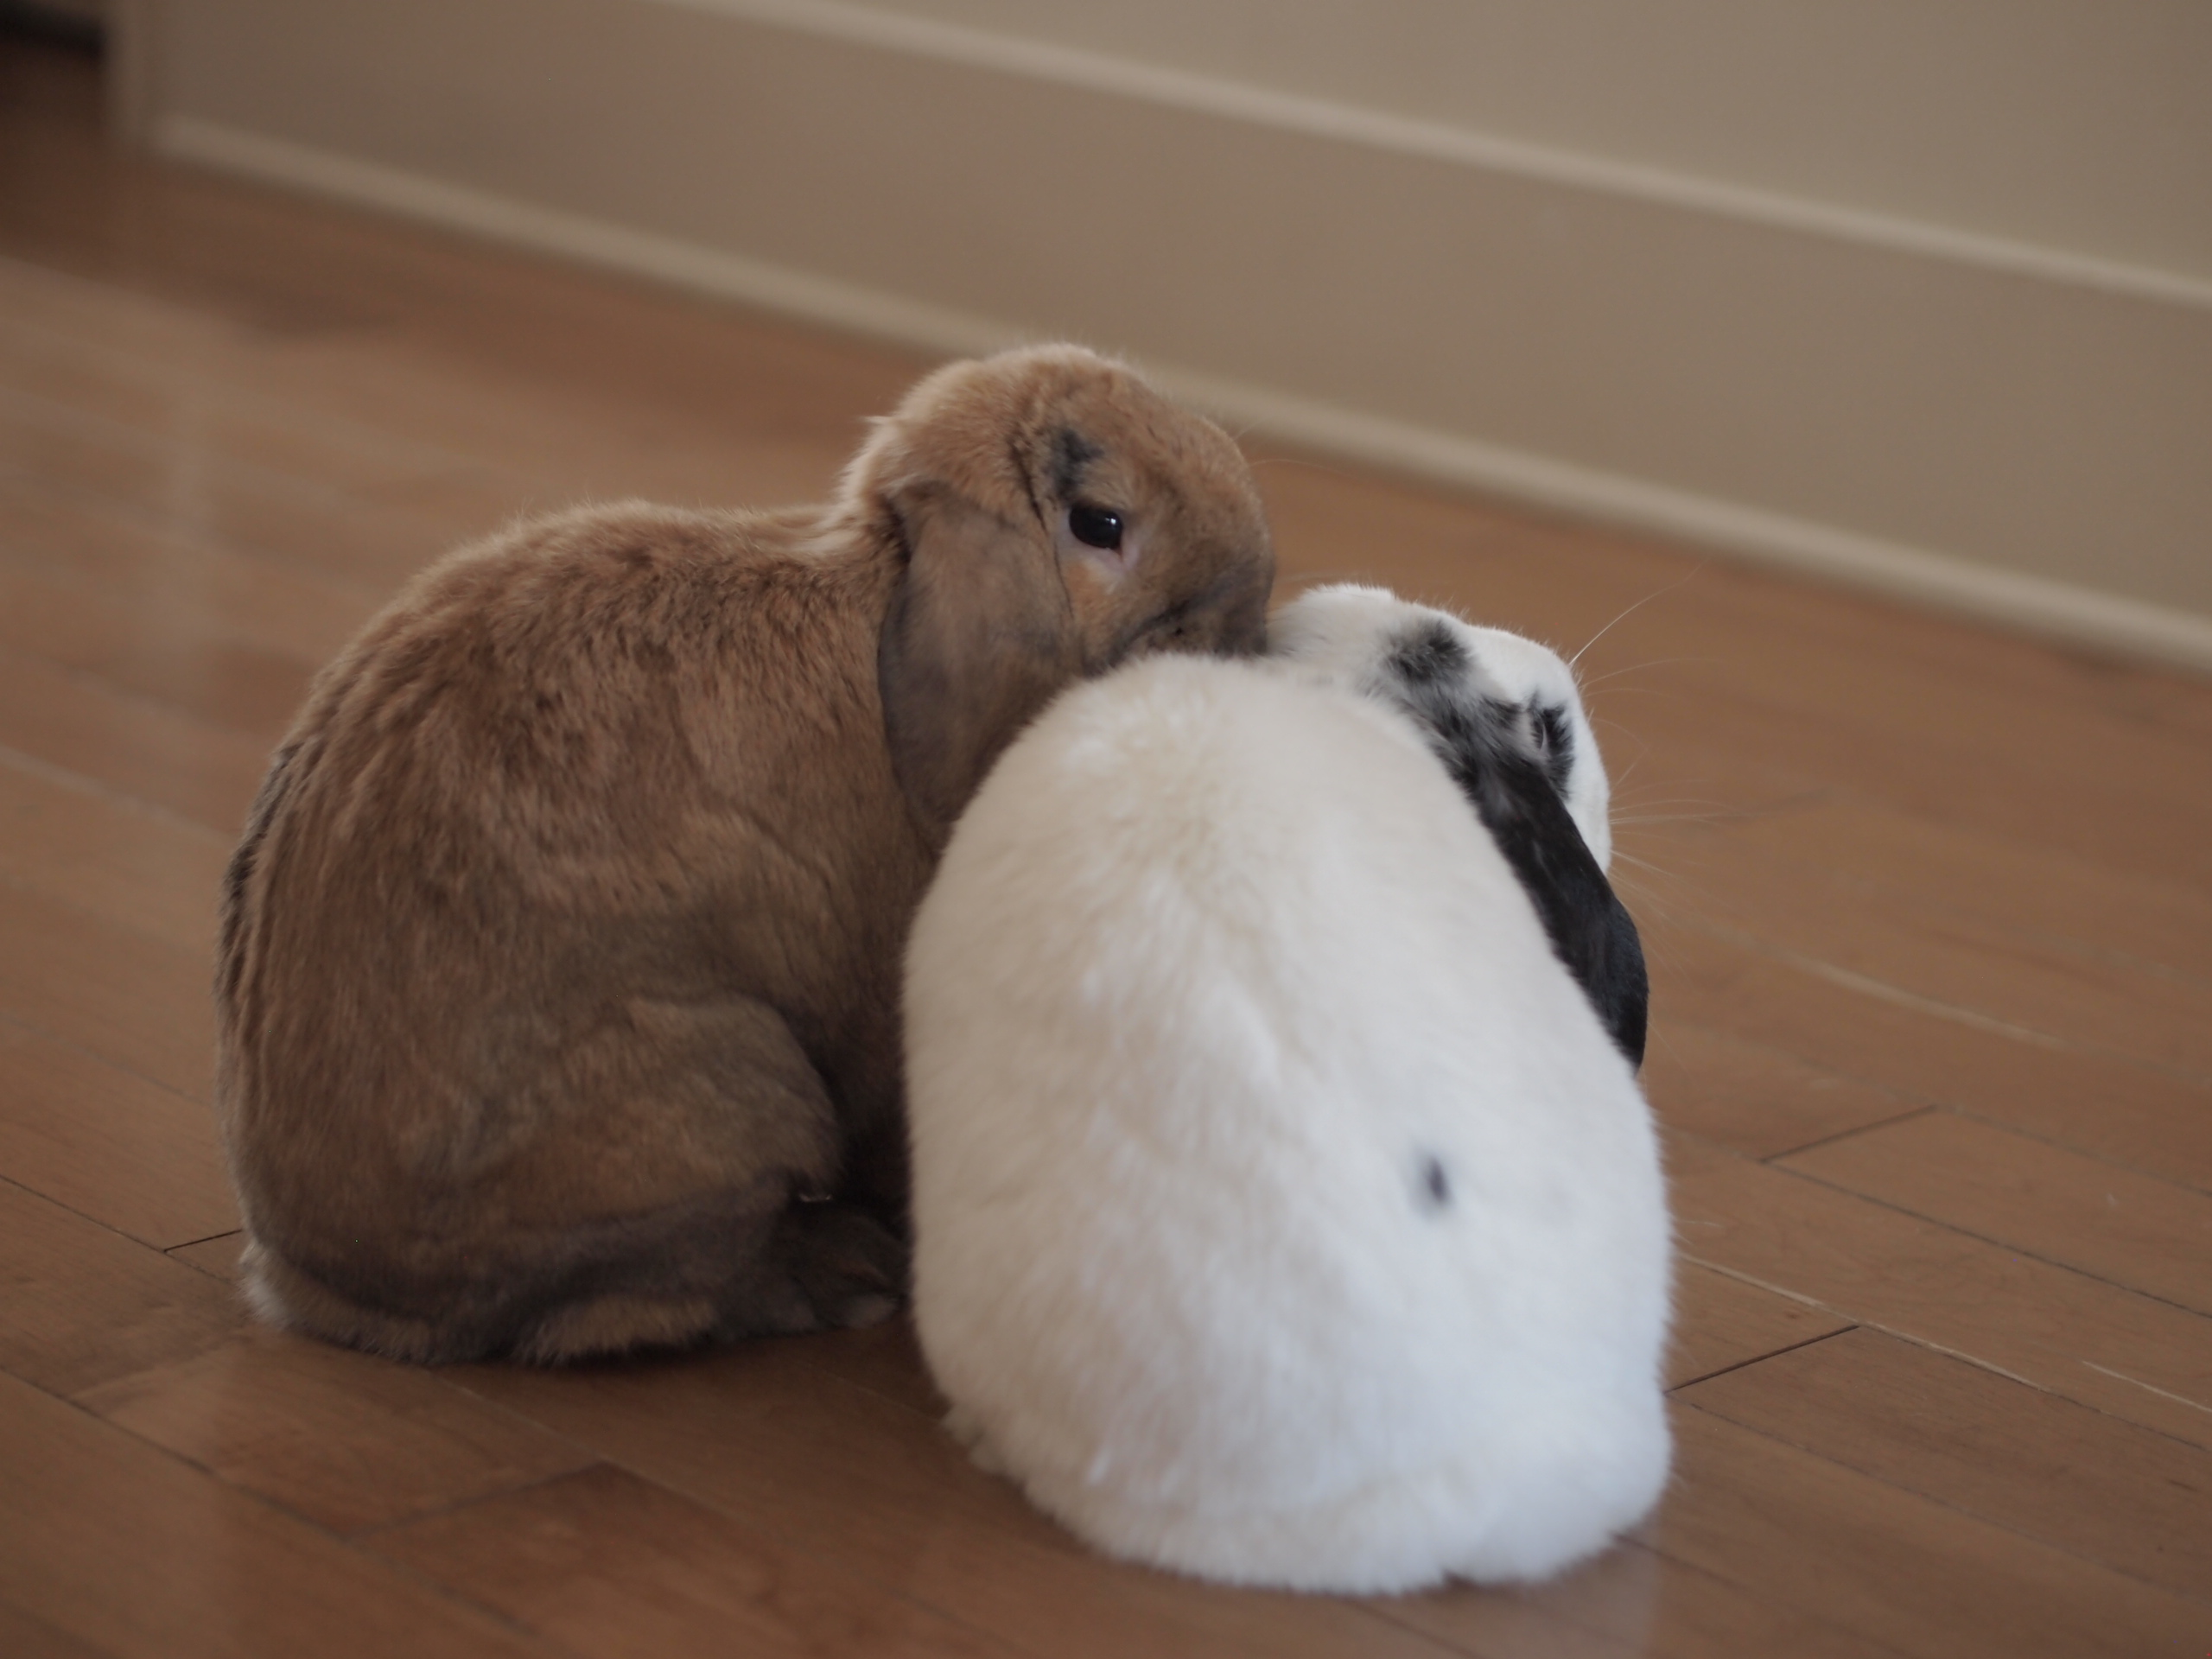 Why I Adopted Rabbits – Facing Gain in Loss